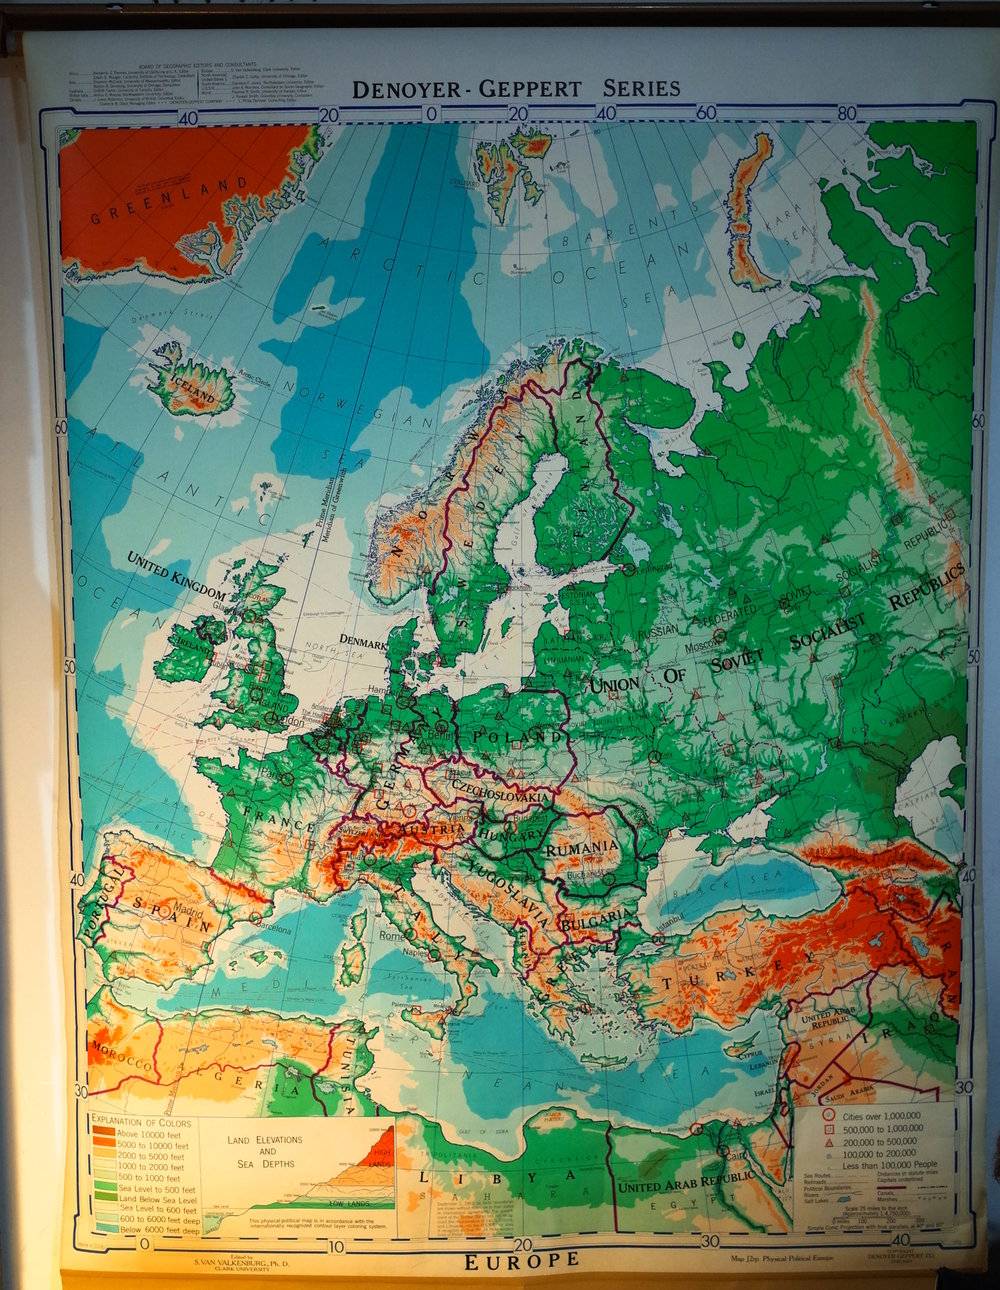 europe-denoyer-geppert-social-science-maps.jpg